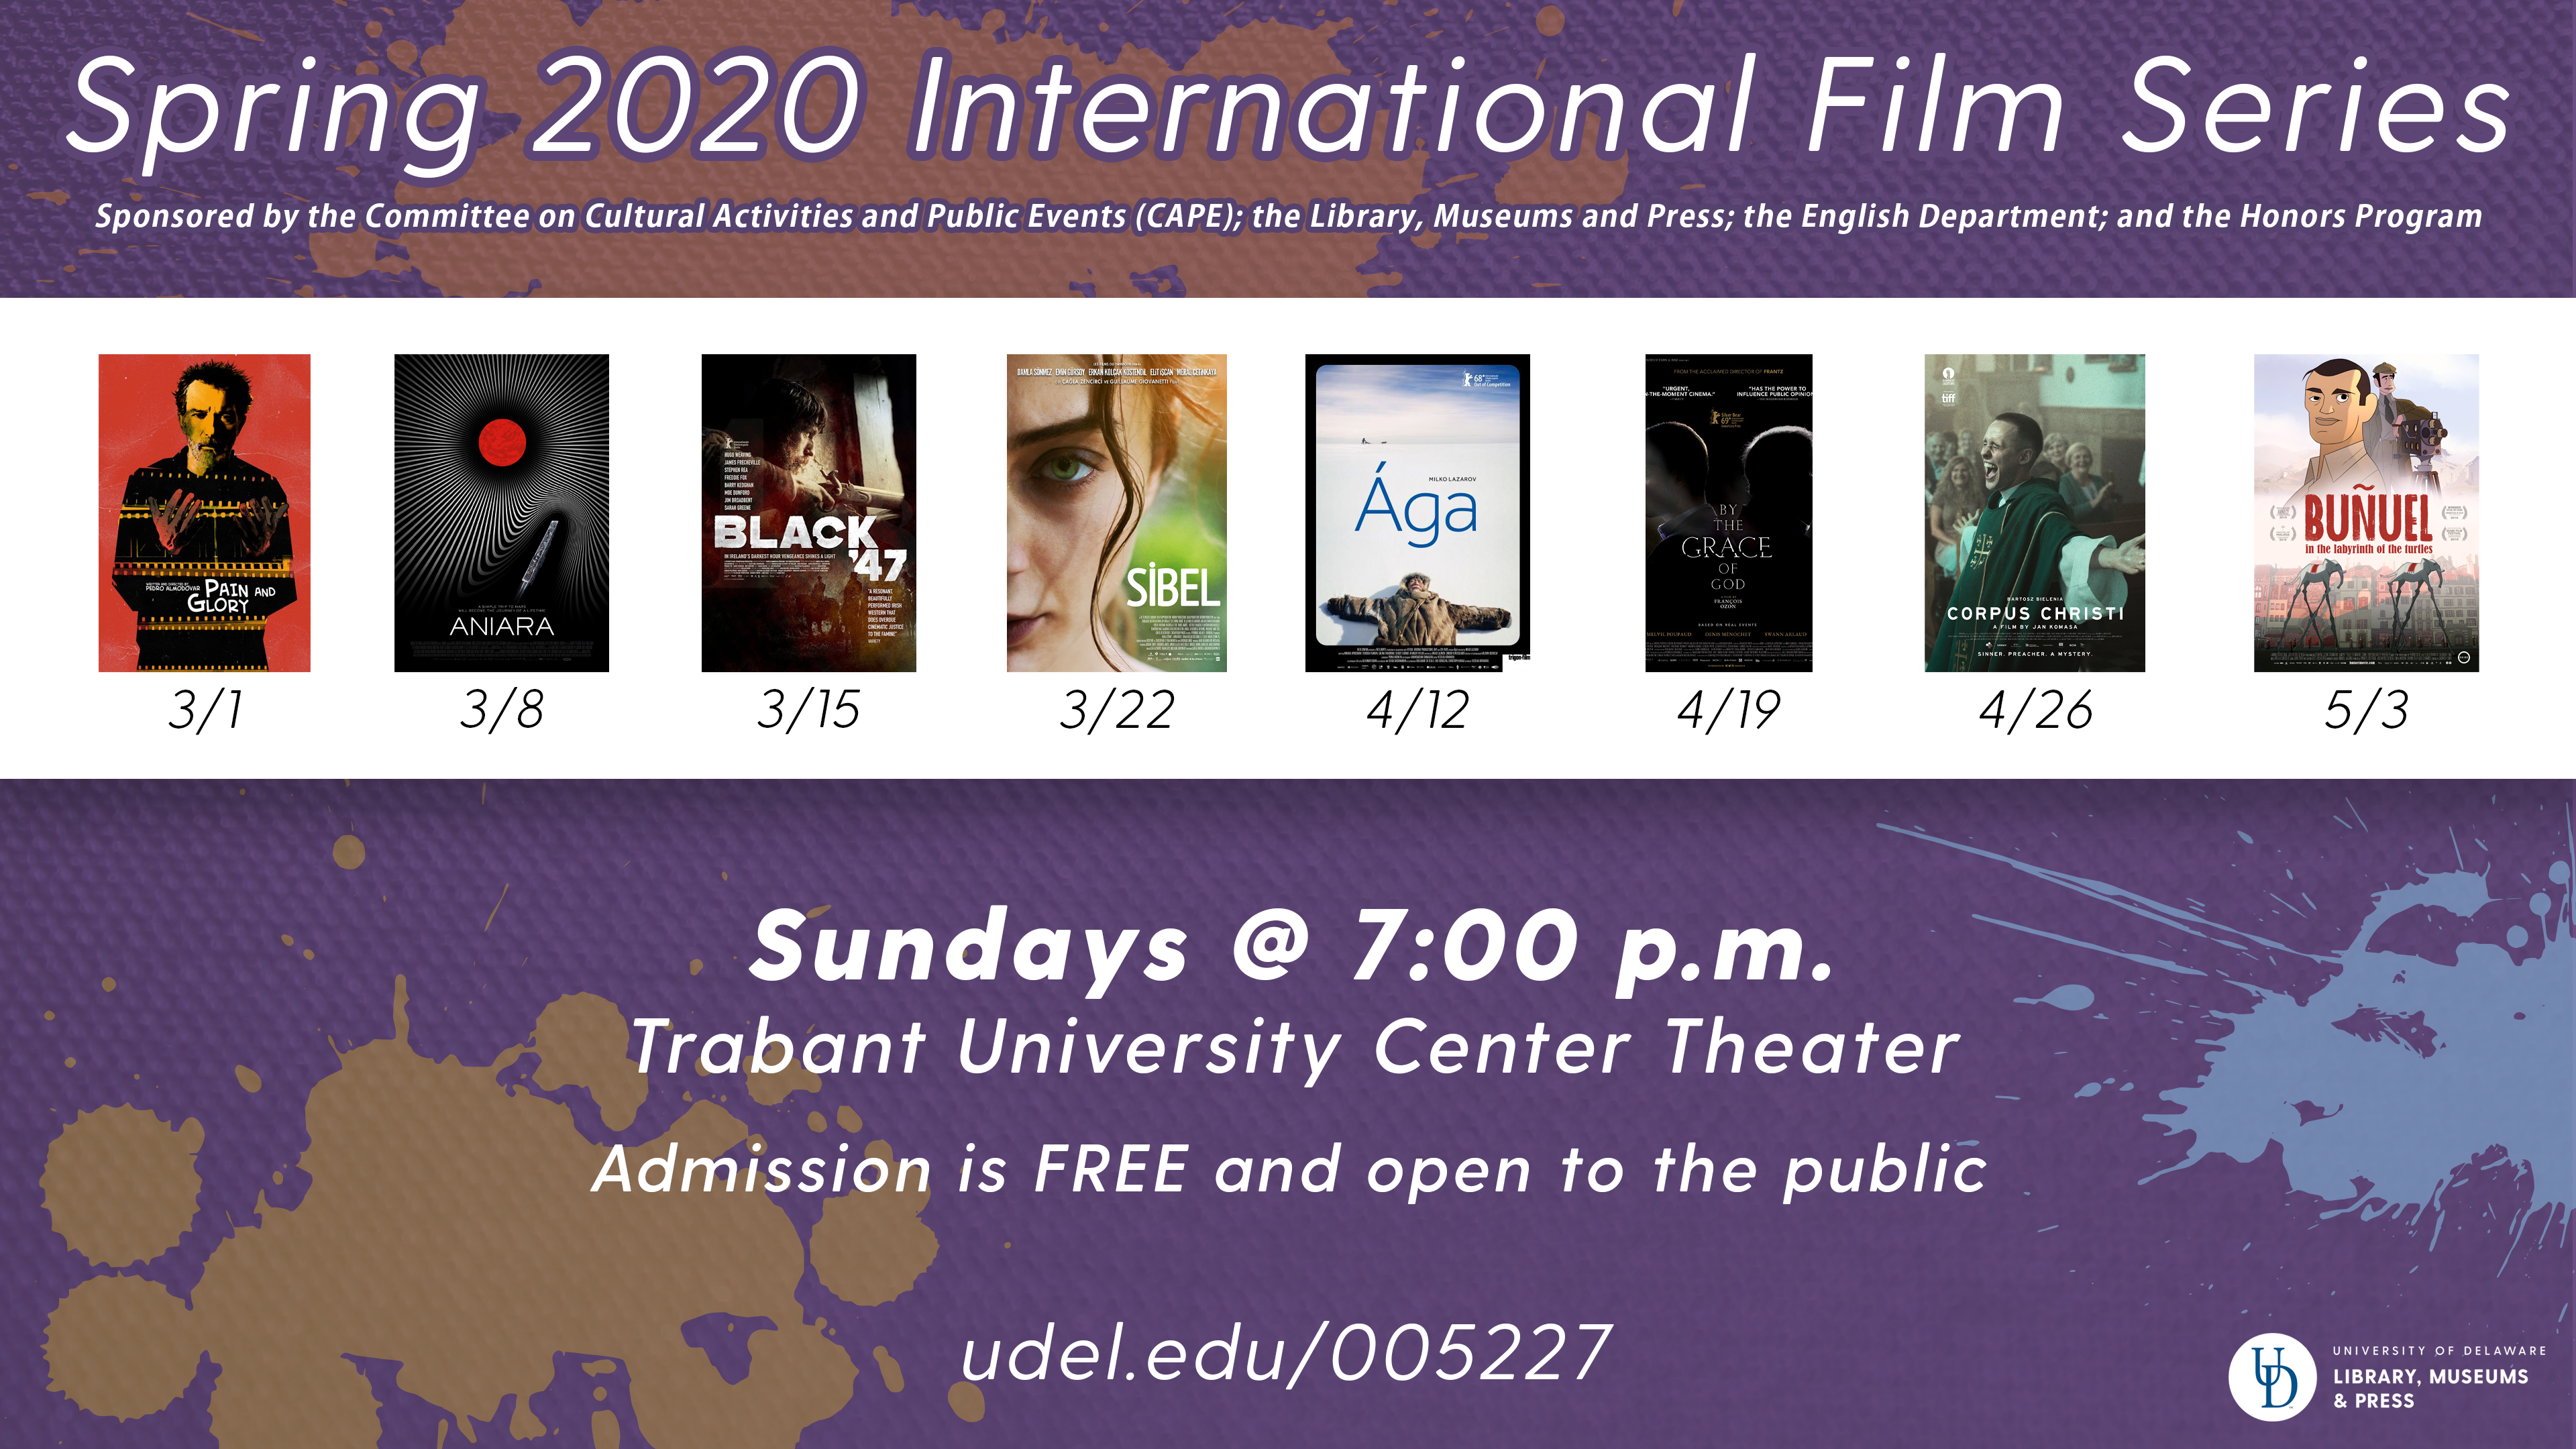 CANCELLED - Spring International Film Series: By the Grace of God